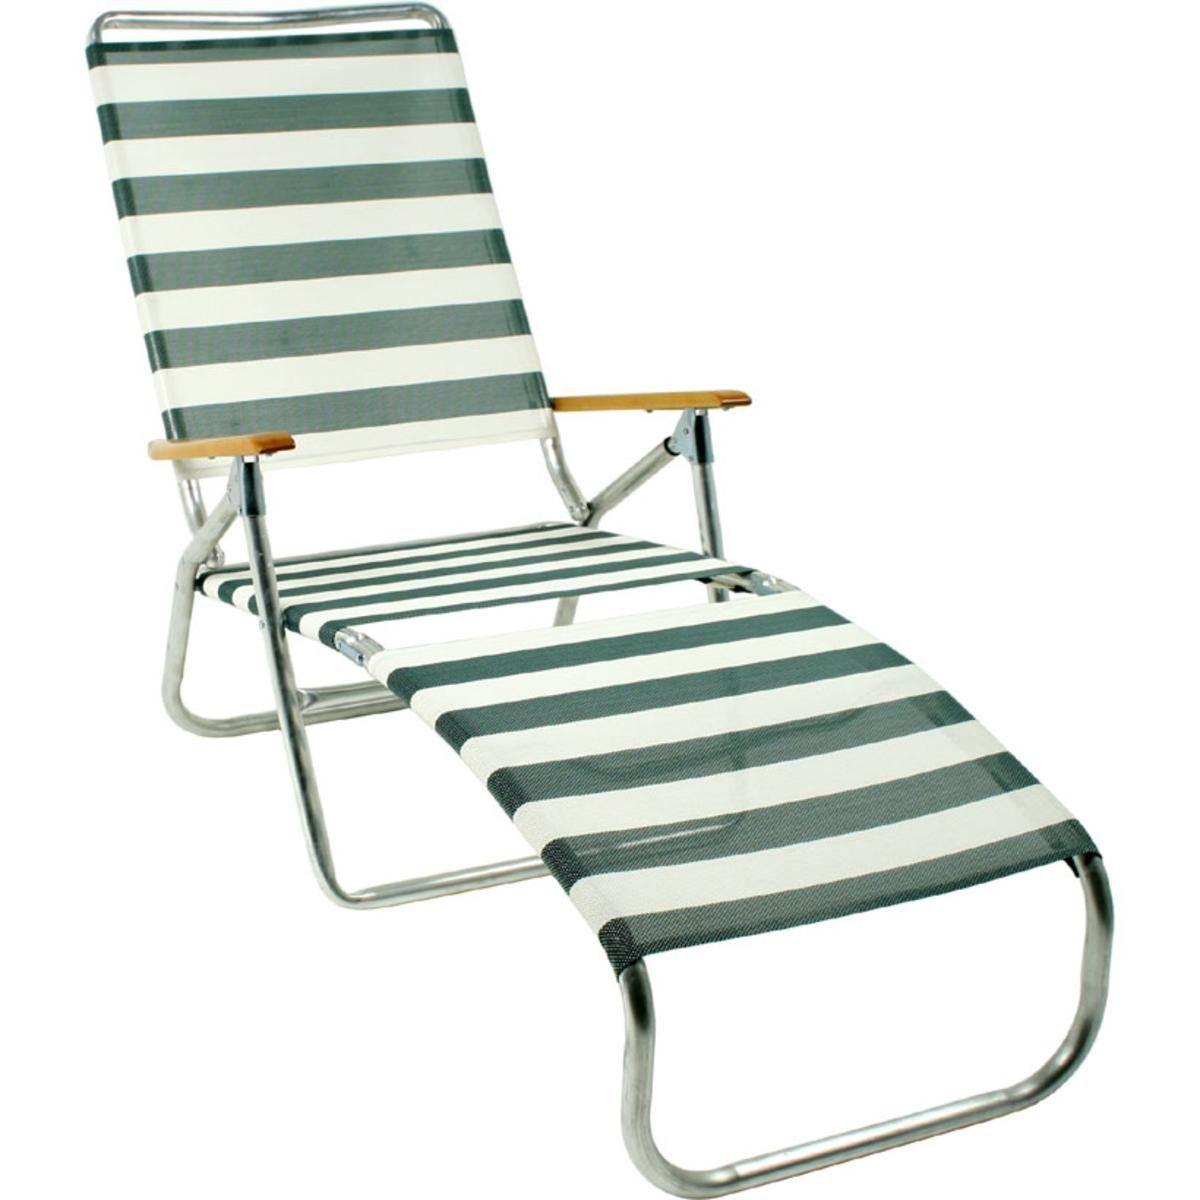 Folding Lounge Beach Chair Awesome Folding Chaise Lounge Beach Chair Chaise Lounge